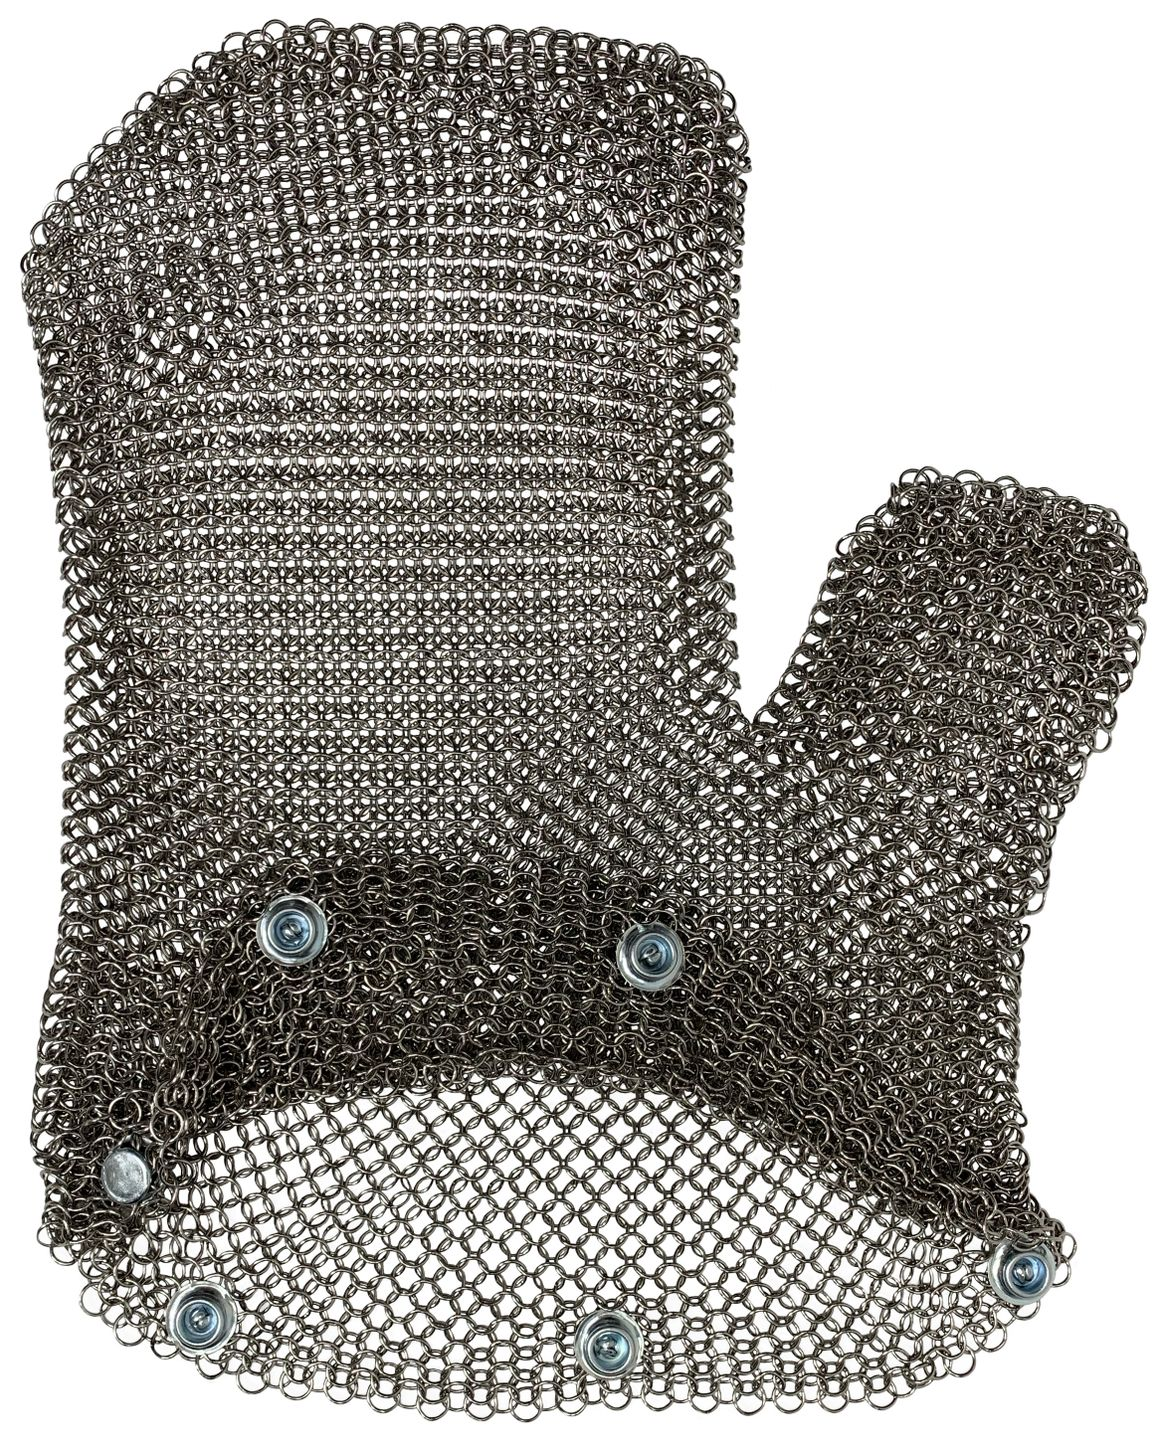 chicago-protective-apparel-stainless-steel-chain-mail-overmitt-with-snaps.jpg